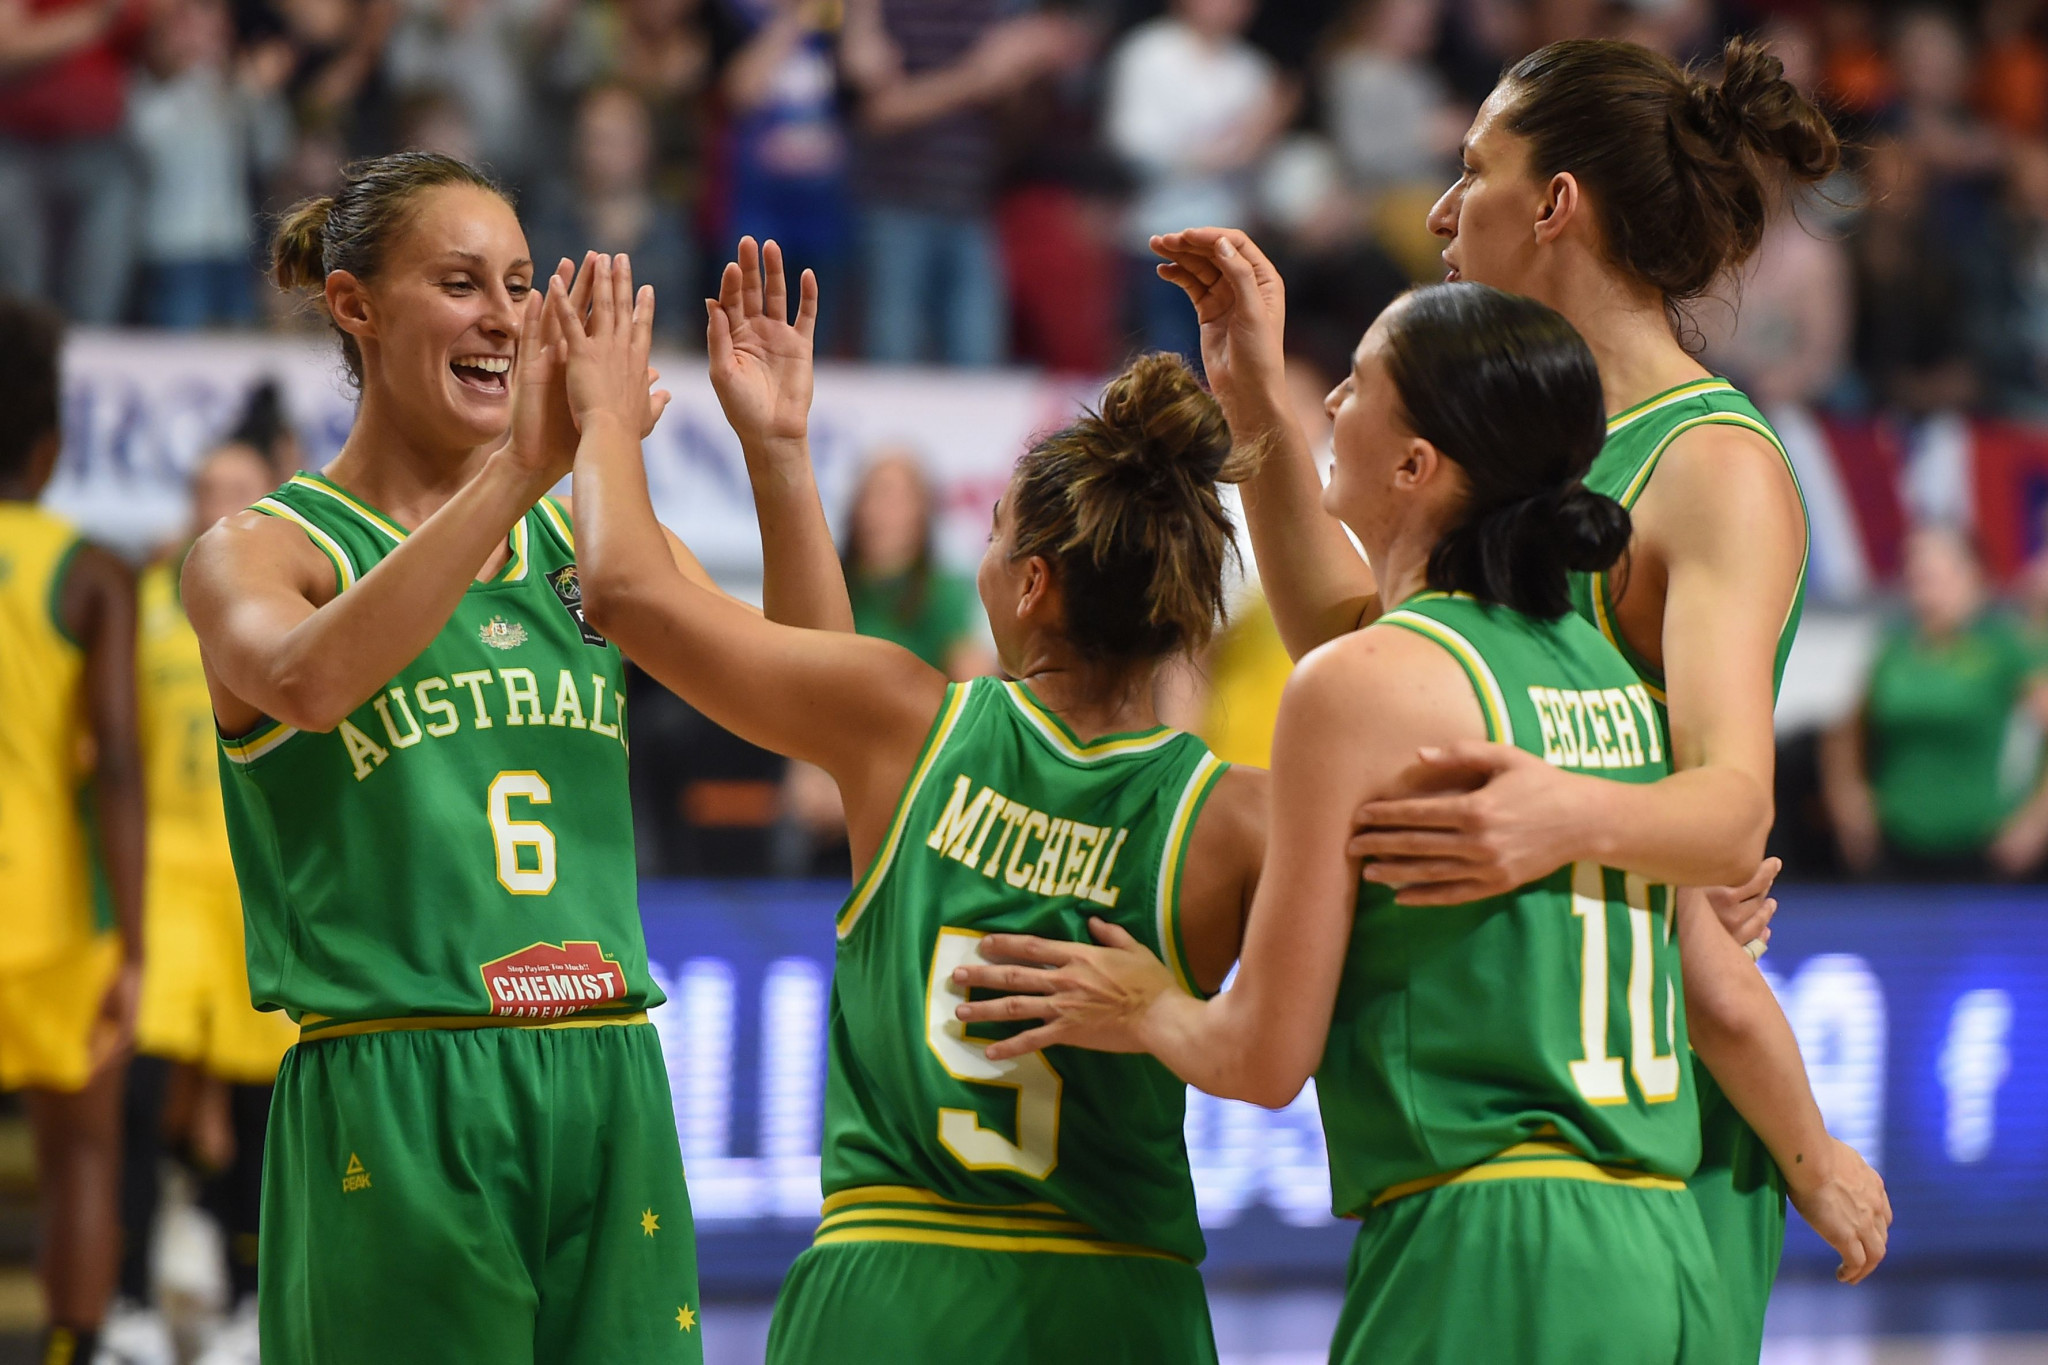 A training camp has been organised for the Australian women's basketball team ©Getty Images